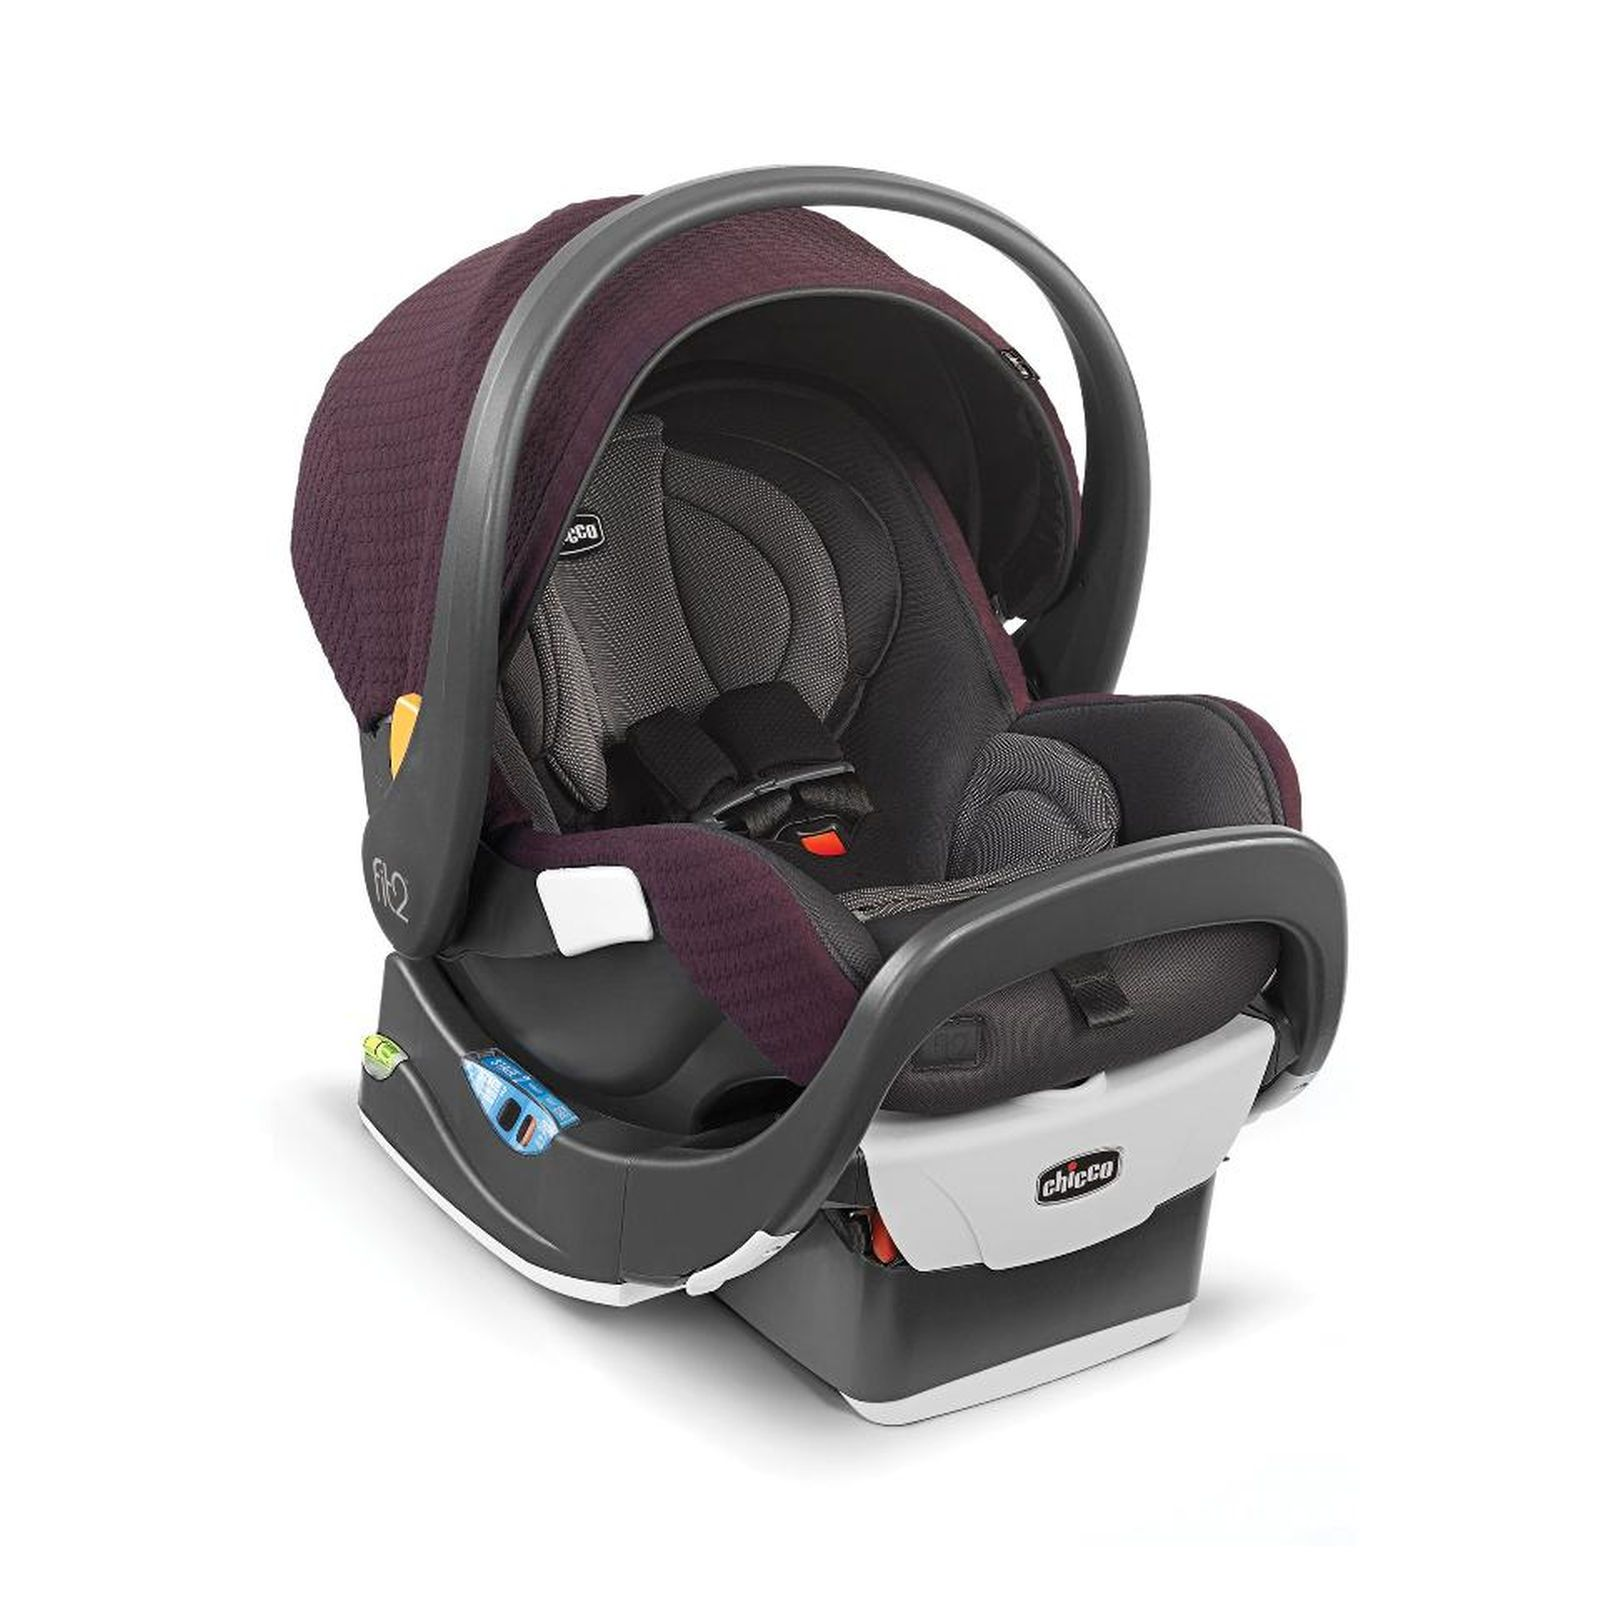 Chicco Fit2 2-Year Rear-Facing Infant and Toddler Car Seat - Arietta